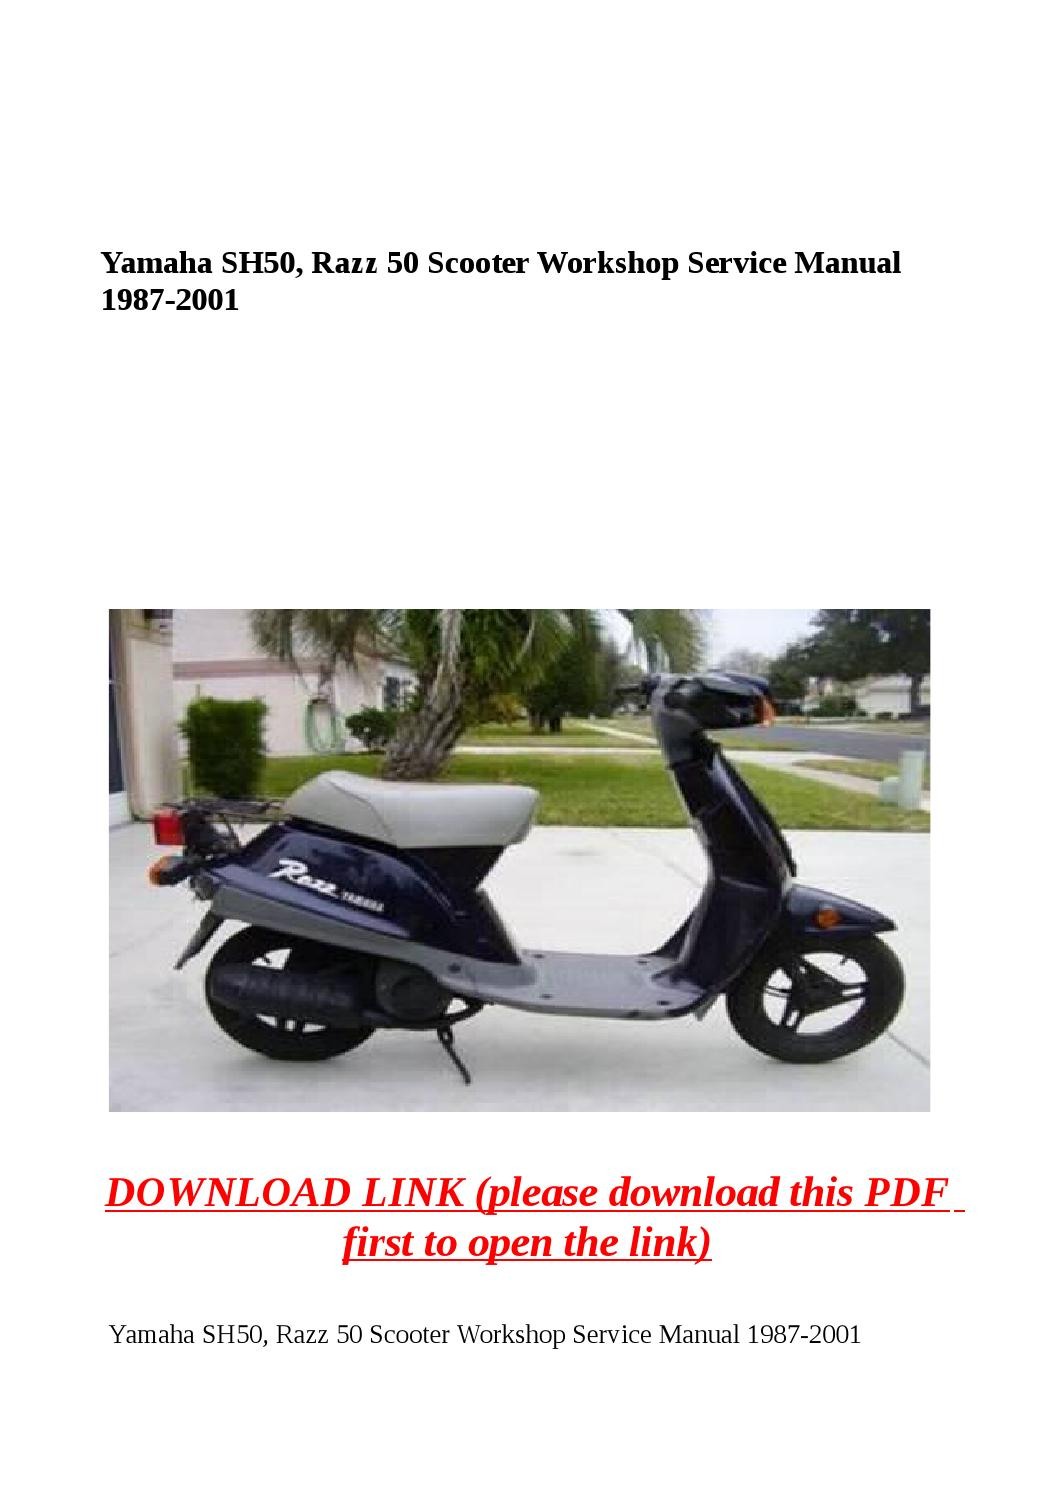 Yamaha zuma 125cc free pdf service manual now on facebook youtube.